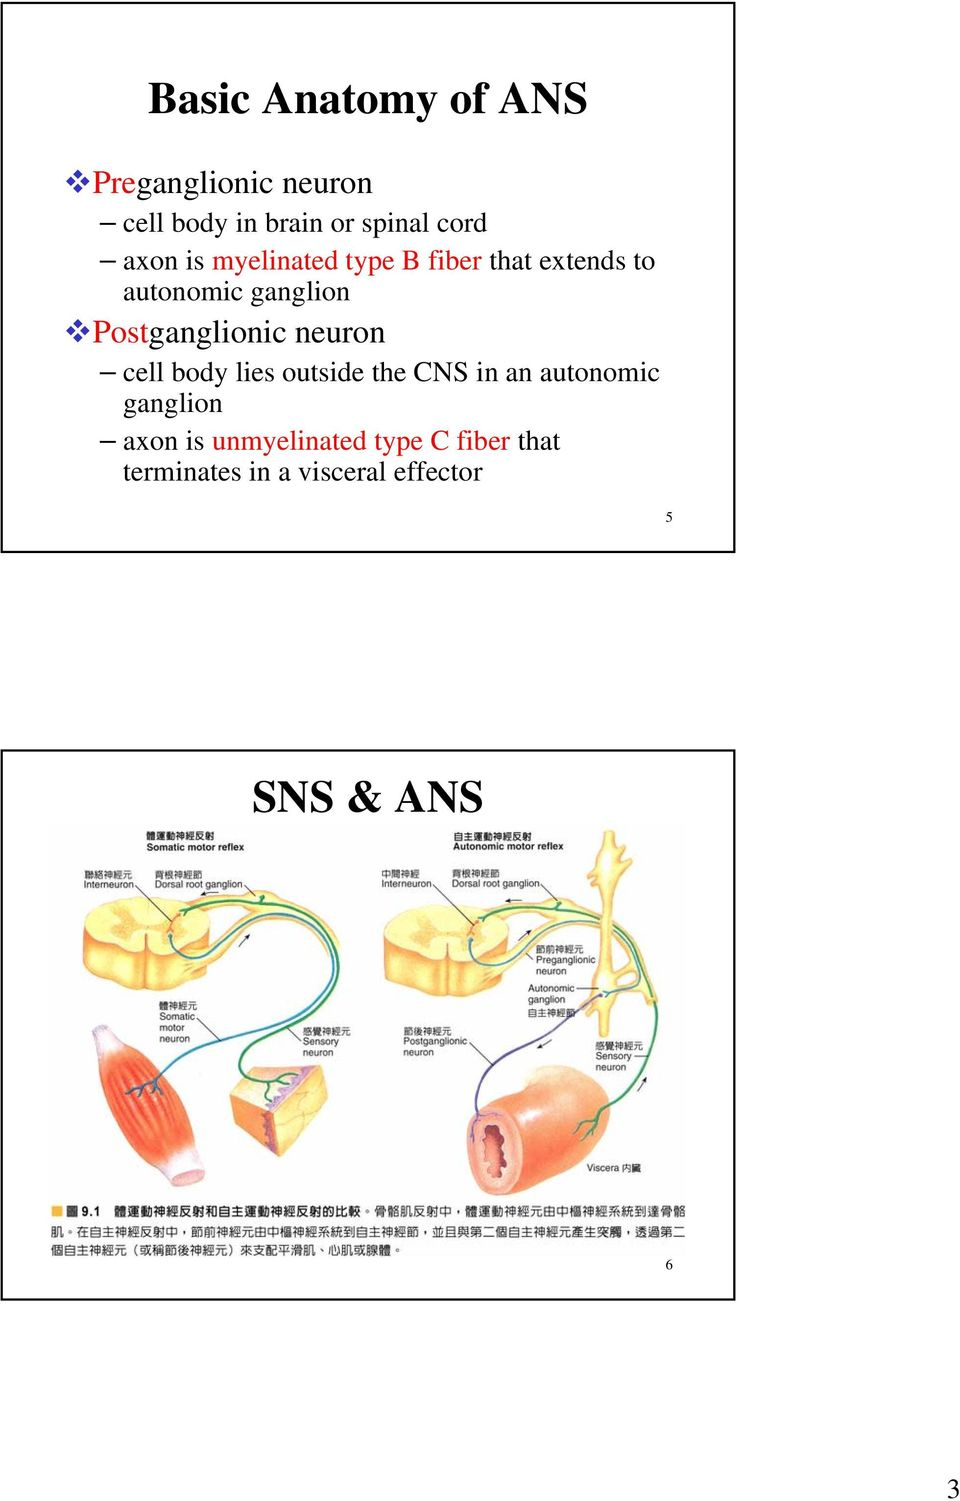 Postganglionic neuron cell body lies outside the CNS in an autonomic ganglion